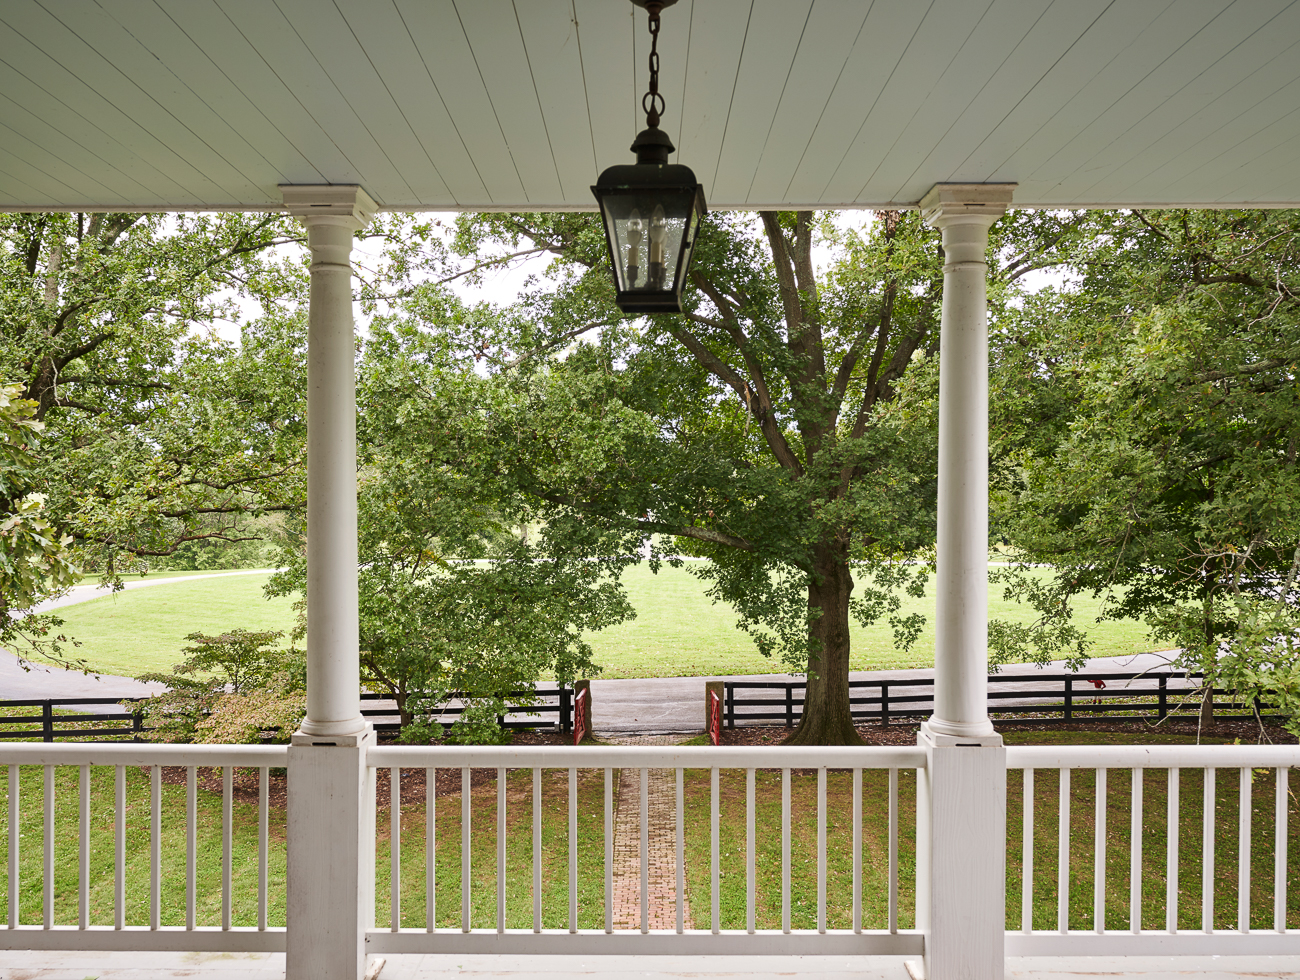 We could all use a getaway this winter. Luckily, Hermitage Farm just outside of Louisville has just the solution: you can stay the night at their historic Main House or the adjacent Smokehouse. The farm was established by Steve Wilson and Laura Lee Brown, who co-founded the highly regarded 21c Museum Hotels. Hermitage Farm is 87 miles southwest of Cincinnati. ADDRESS: 10500 W Highway 42 (40026) / Image courtesy of Hermitage Farm // Published: 1.5.21